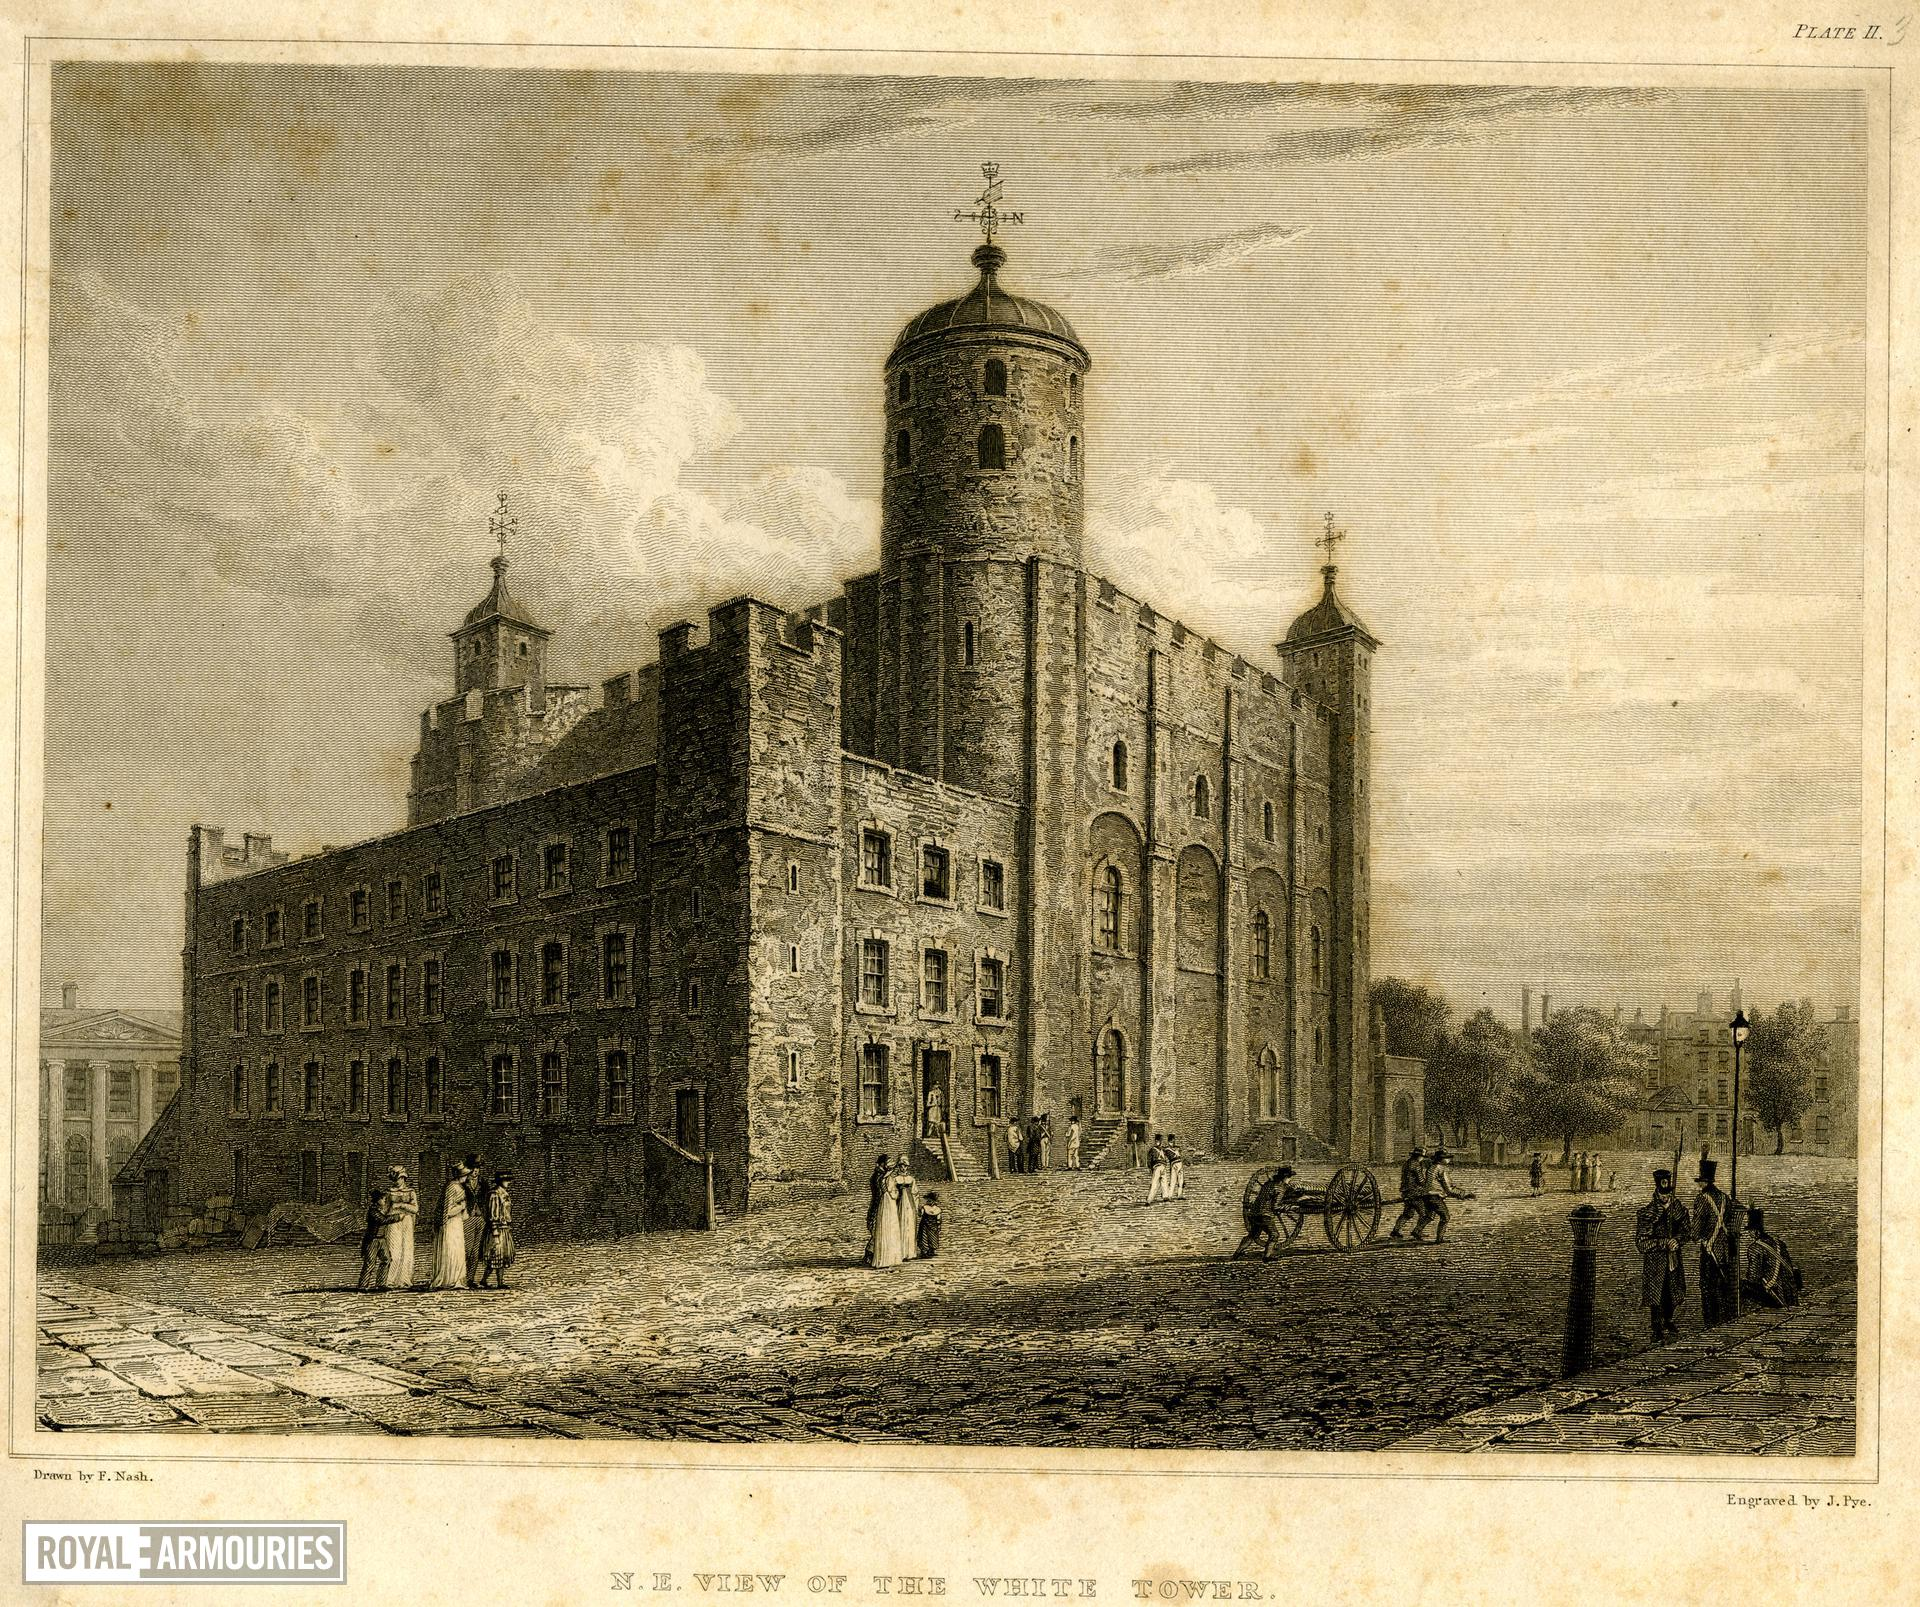 Print 'N.E. View of the White Tower', Tower of London, about 1820.